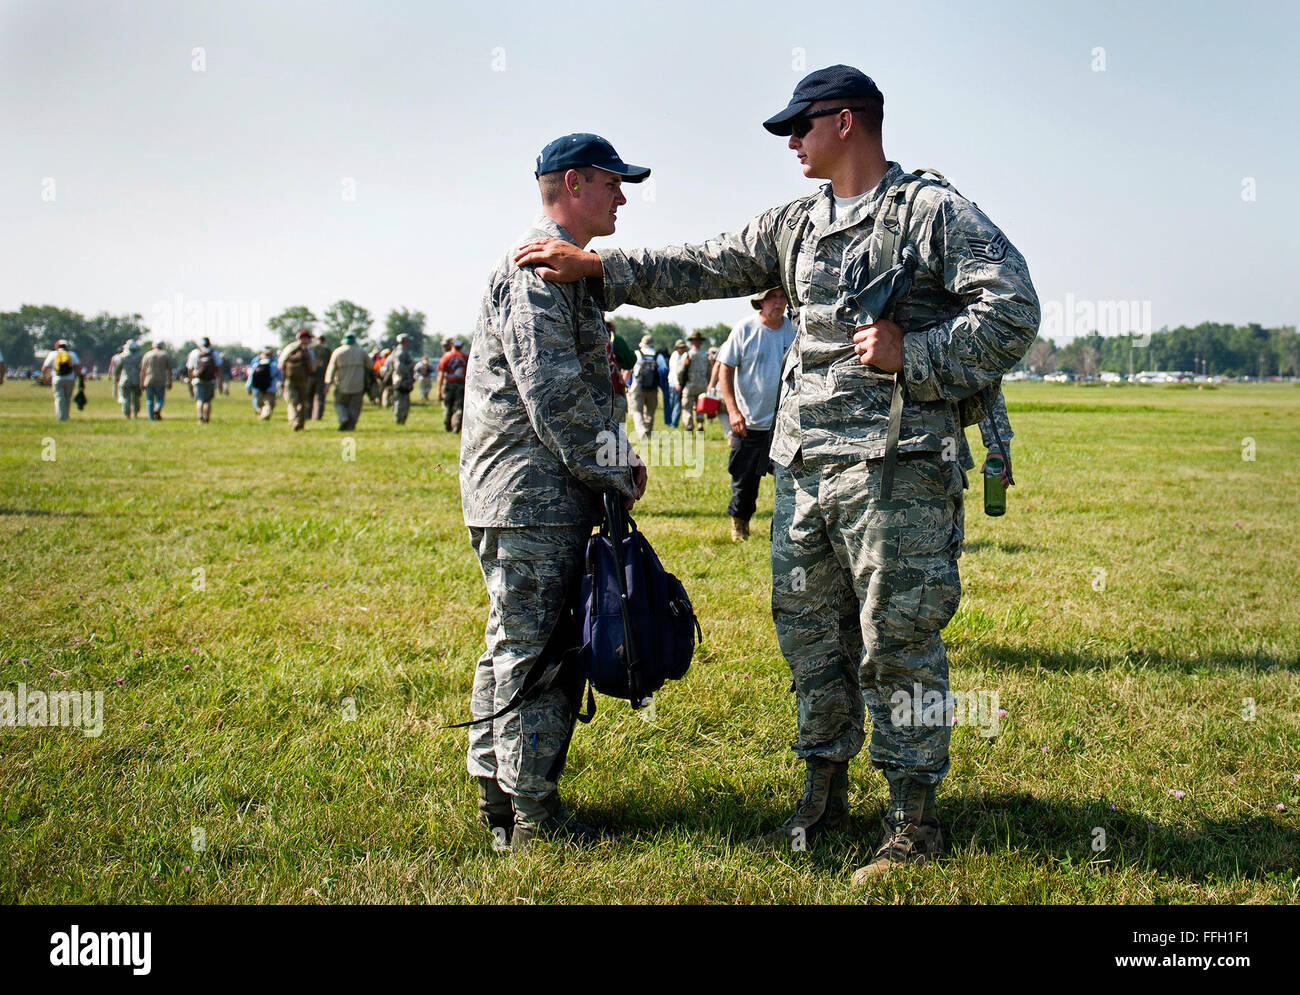 Staff Sgt. Timothy Hessel and Special Agent David Ohlinger talk and compare scores during the rifle competition - Stock Image